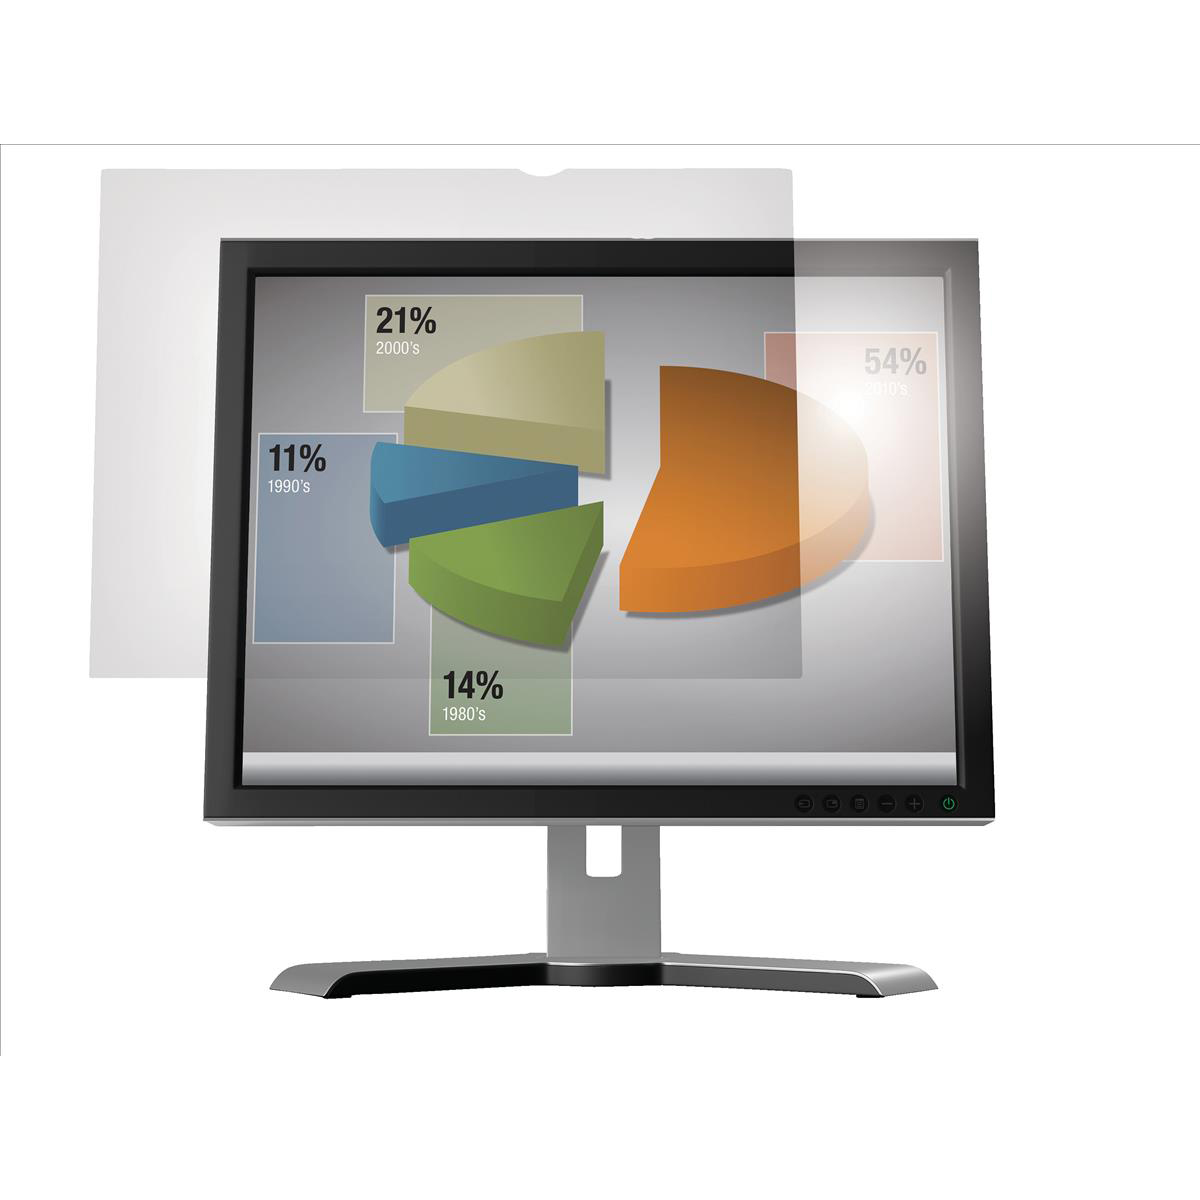 Image for 3M Anti-glare Filter 23in Widescreen 16:9 for LCD Monitor Ref AG23.0W9